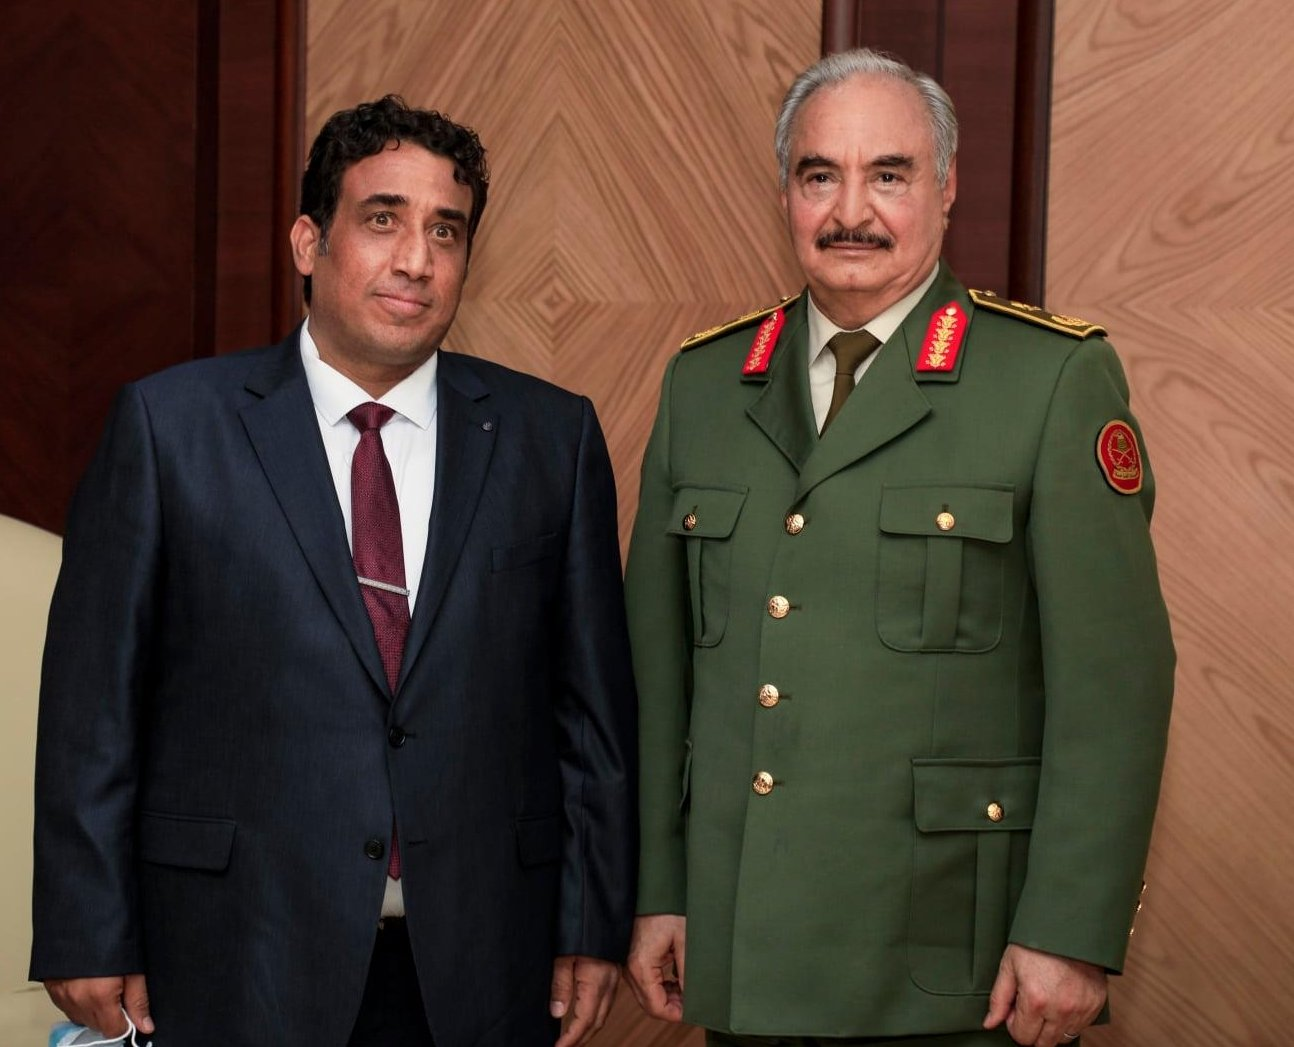 The president of Libya's recently elected transitional government, Mohammed Menfi (L), meets with putschist Gen. Khalifa Haftar in Benghazi, eastern Libya, Feb. 11, 2021 (AA Photo)